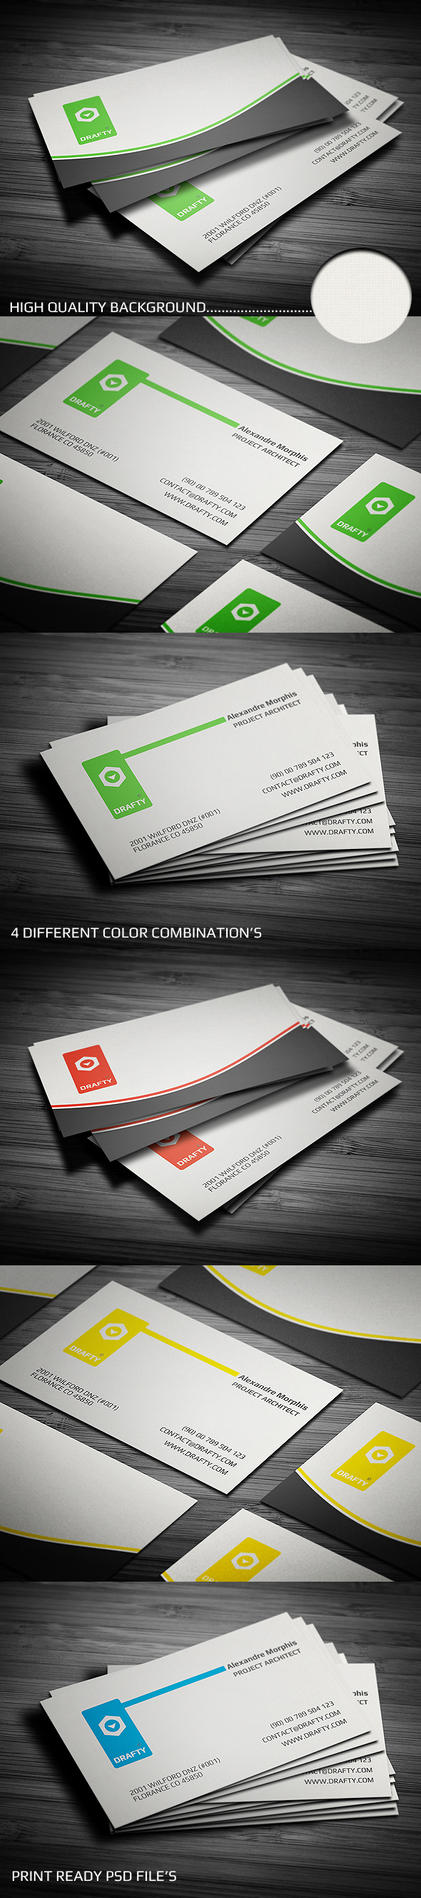 New corporate business card by calwincalwin